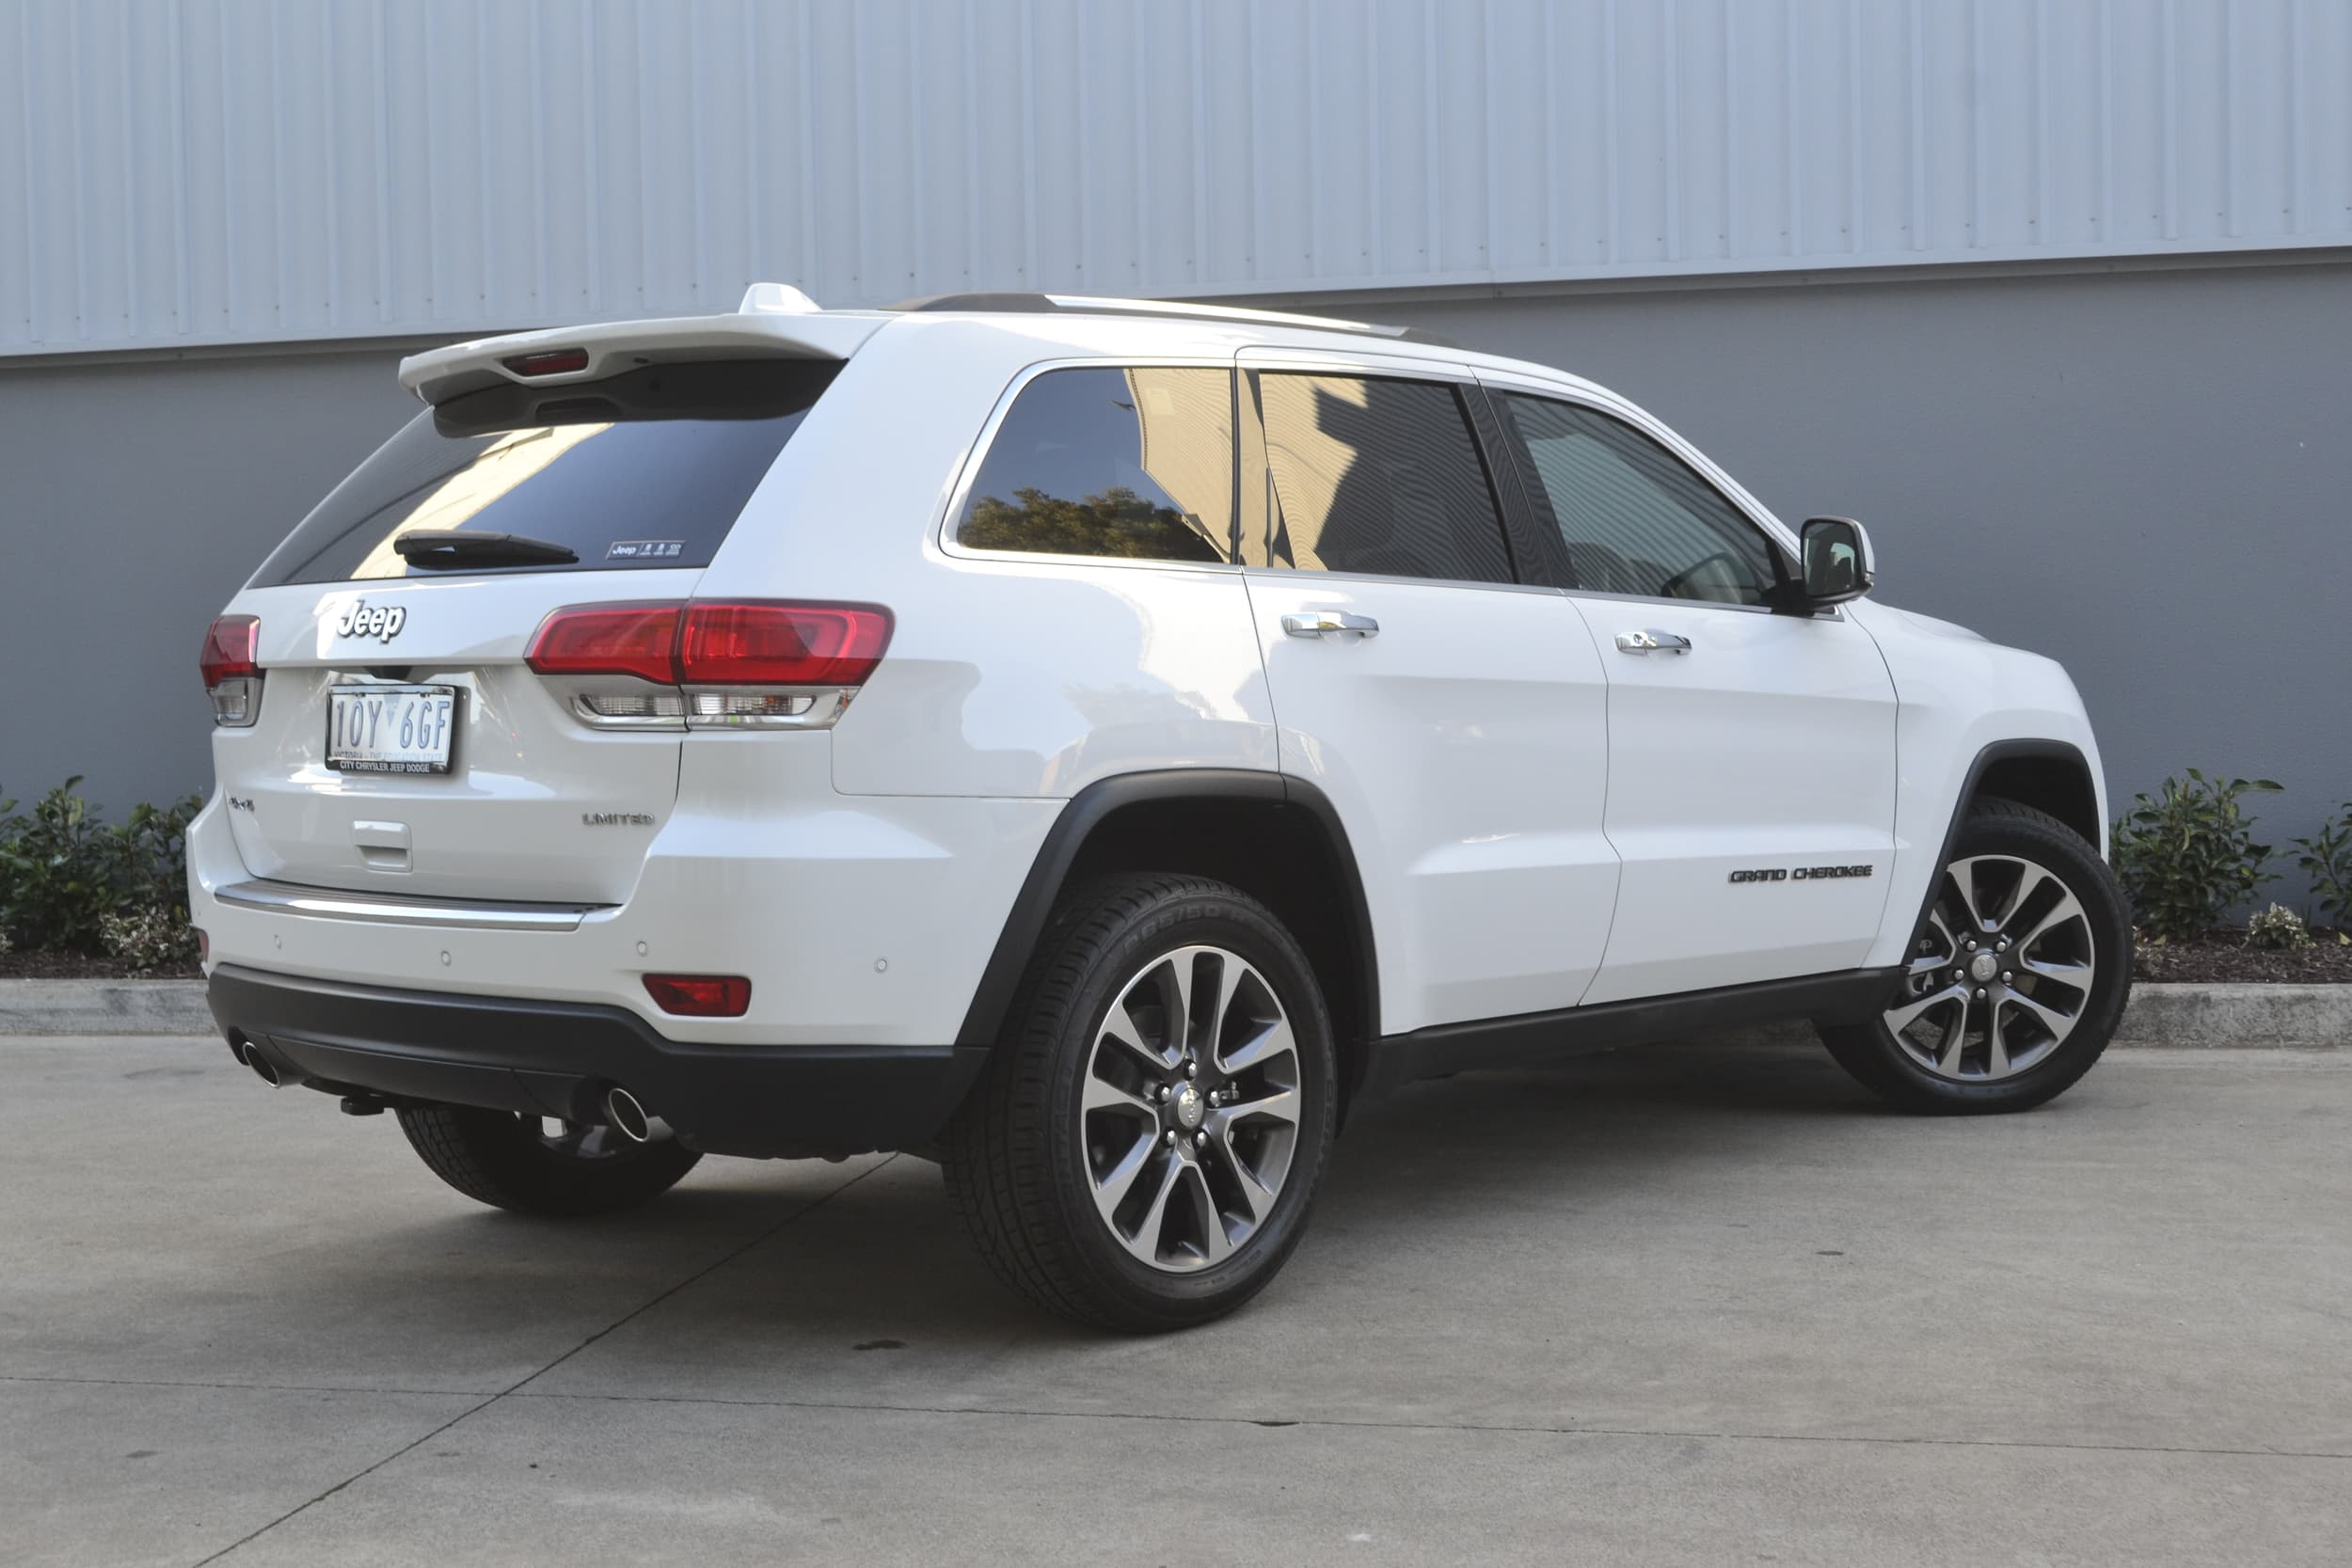 2019 Jeep Grand Cherokee Limited Auto 4x4 MY19 - image 11